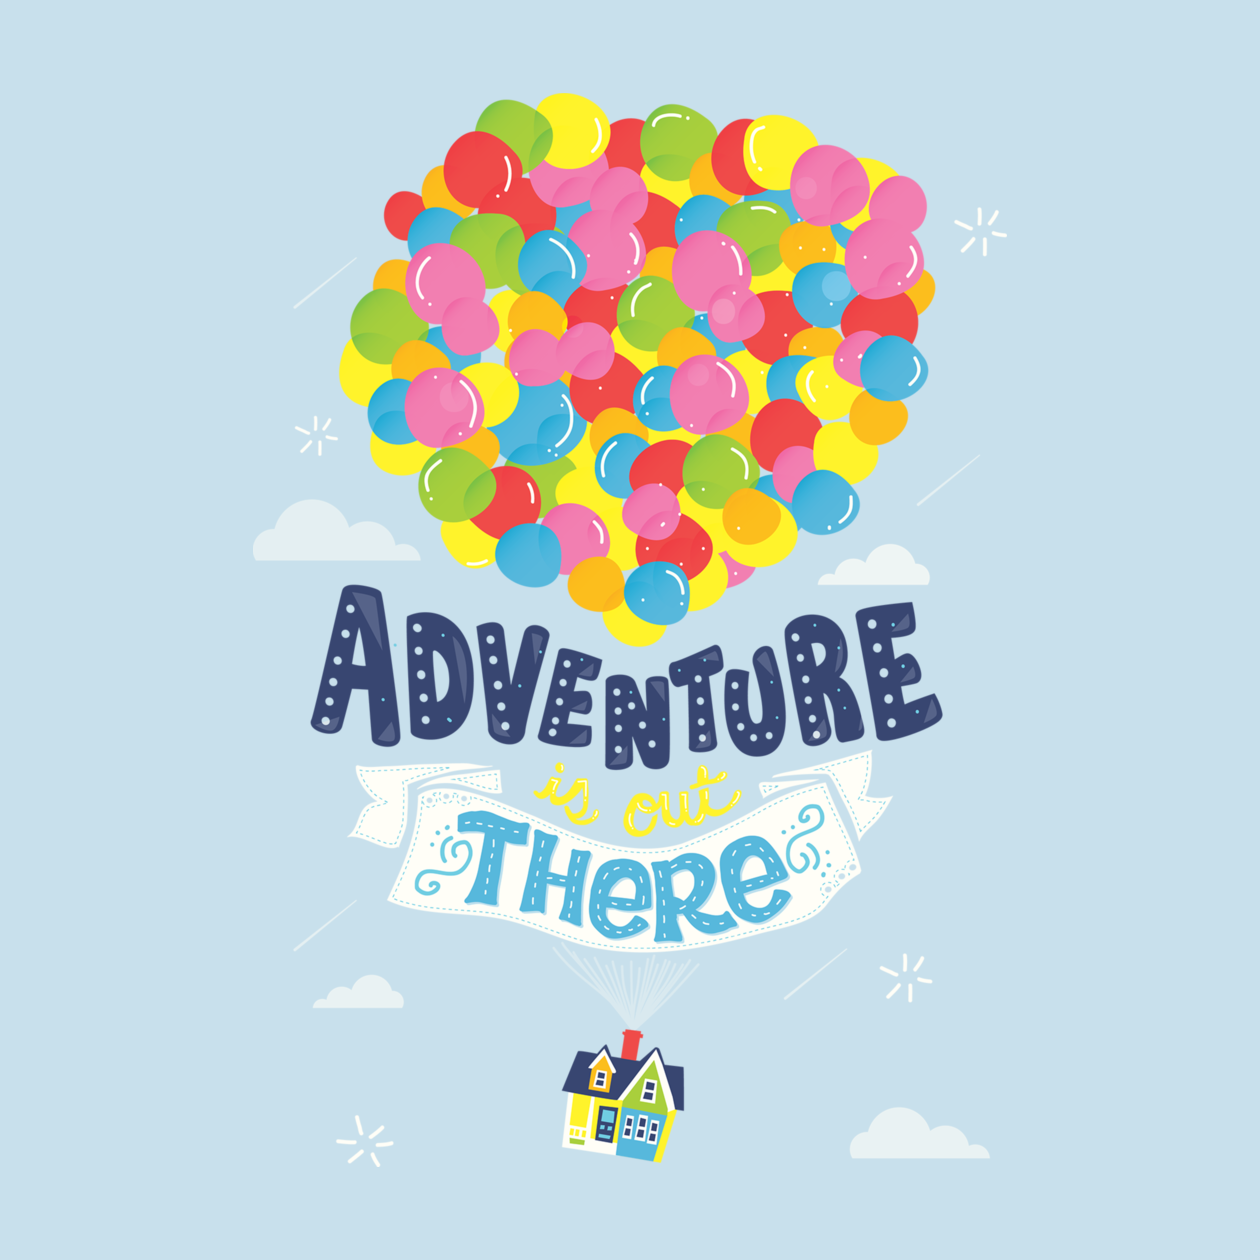 Adventure is out there | Pixar quotes, Disney up, Pixar movies